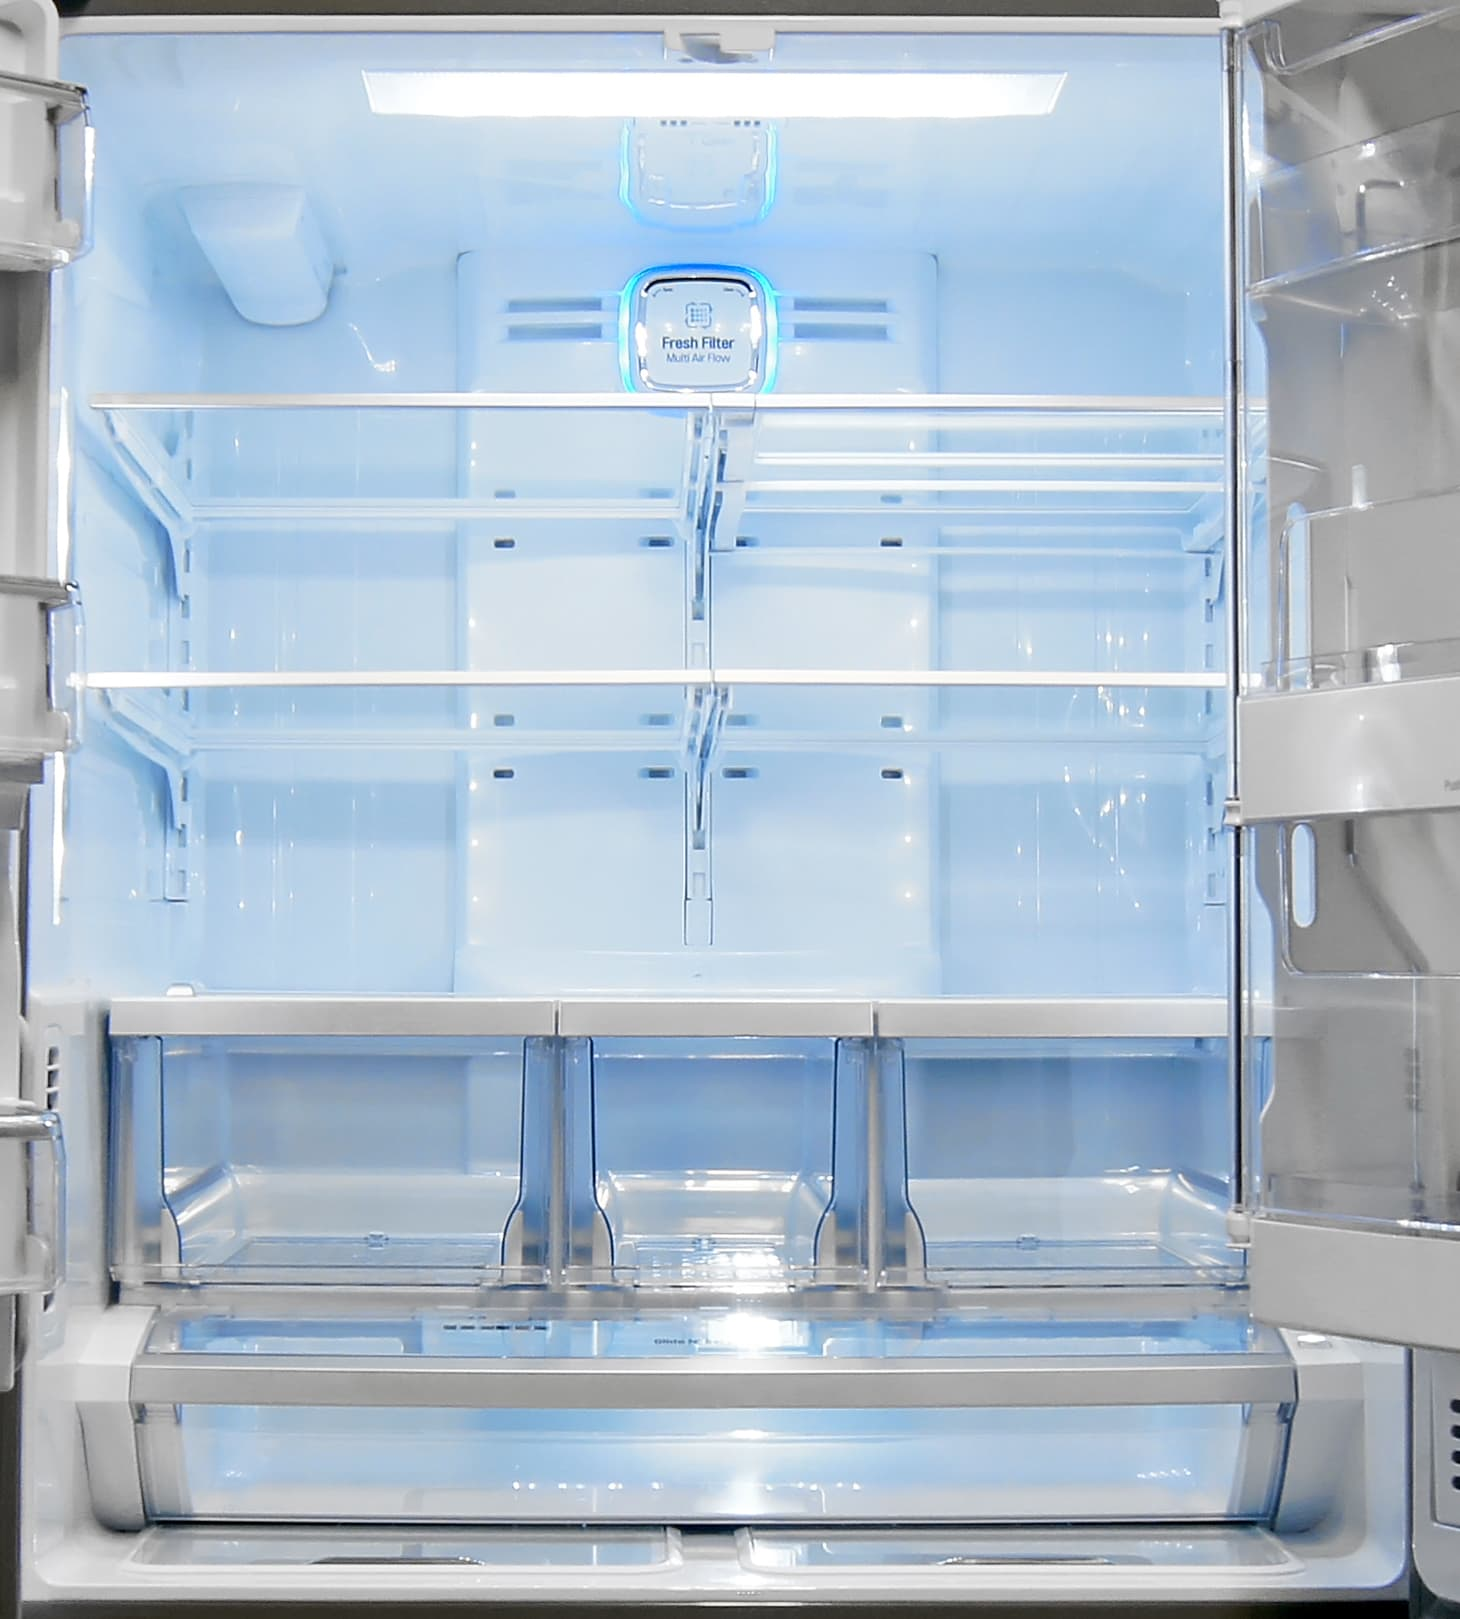 Lots of storage compartments in the LG LFX32945ST allow you to really customize your food storage.